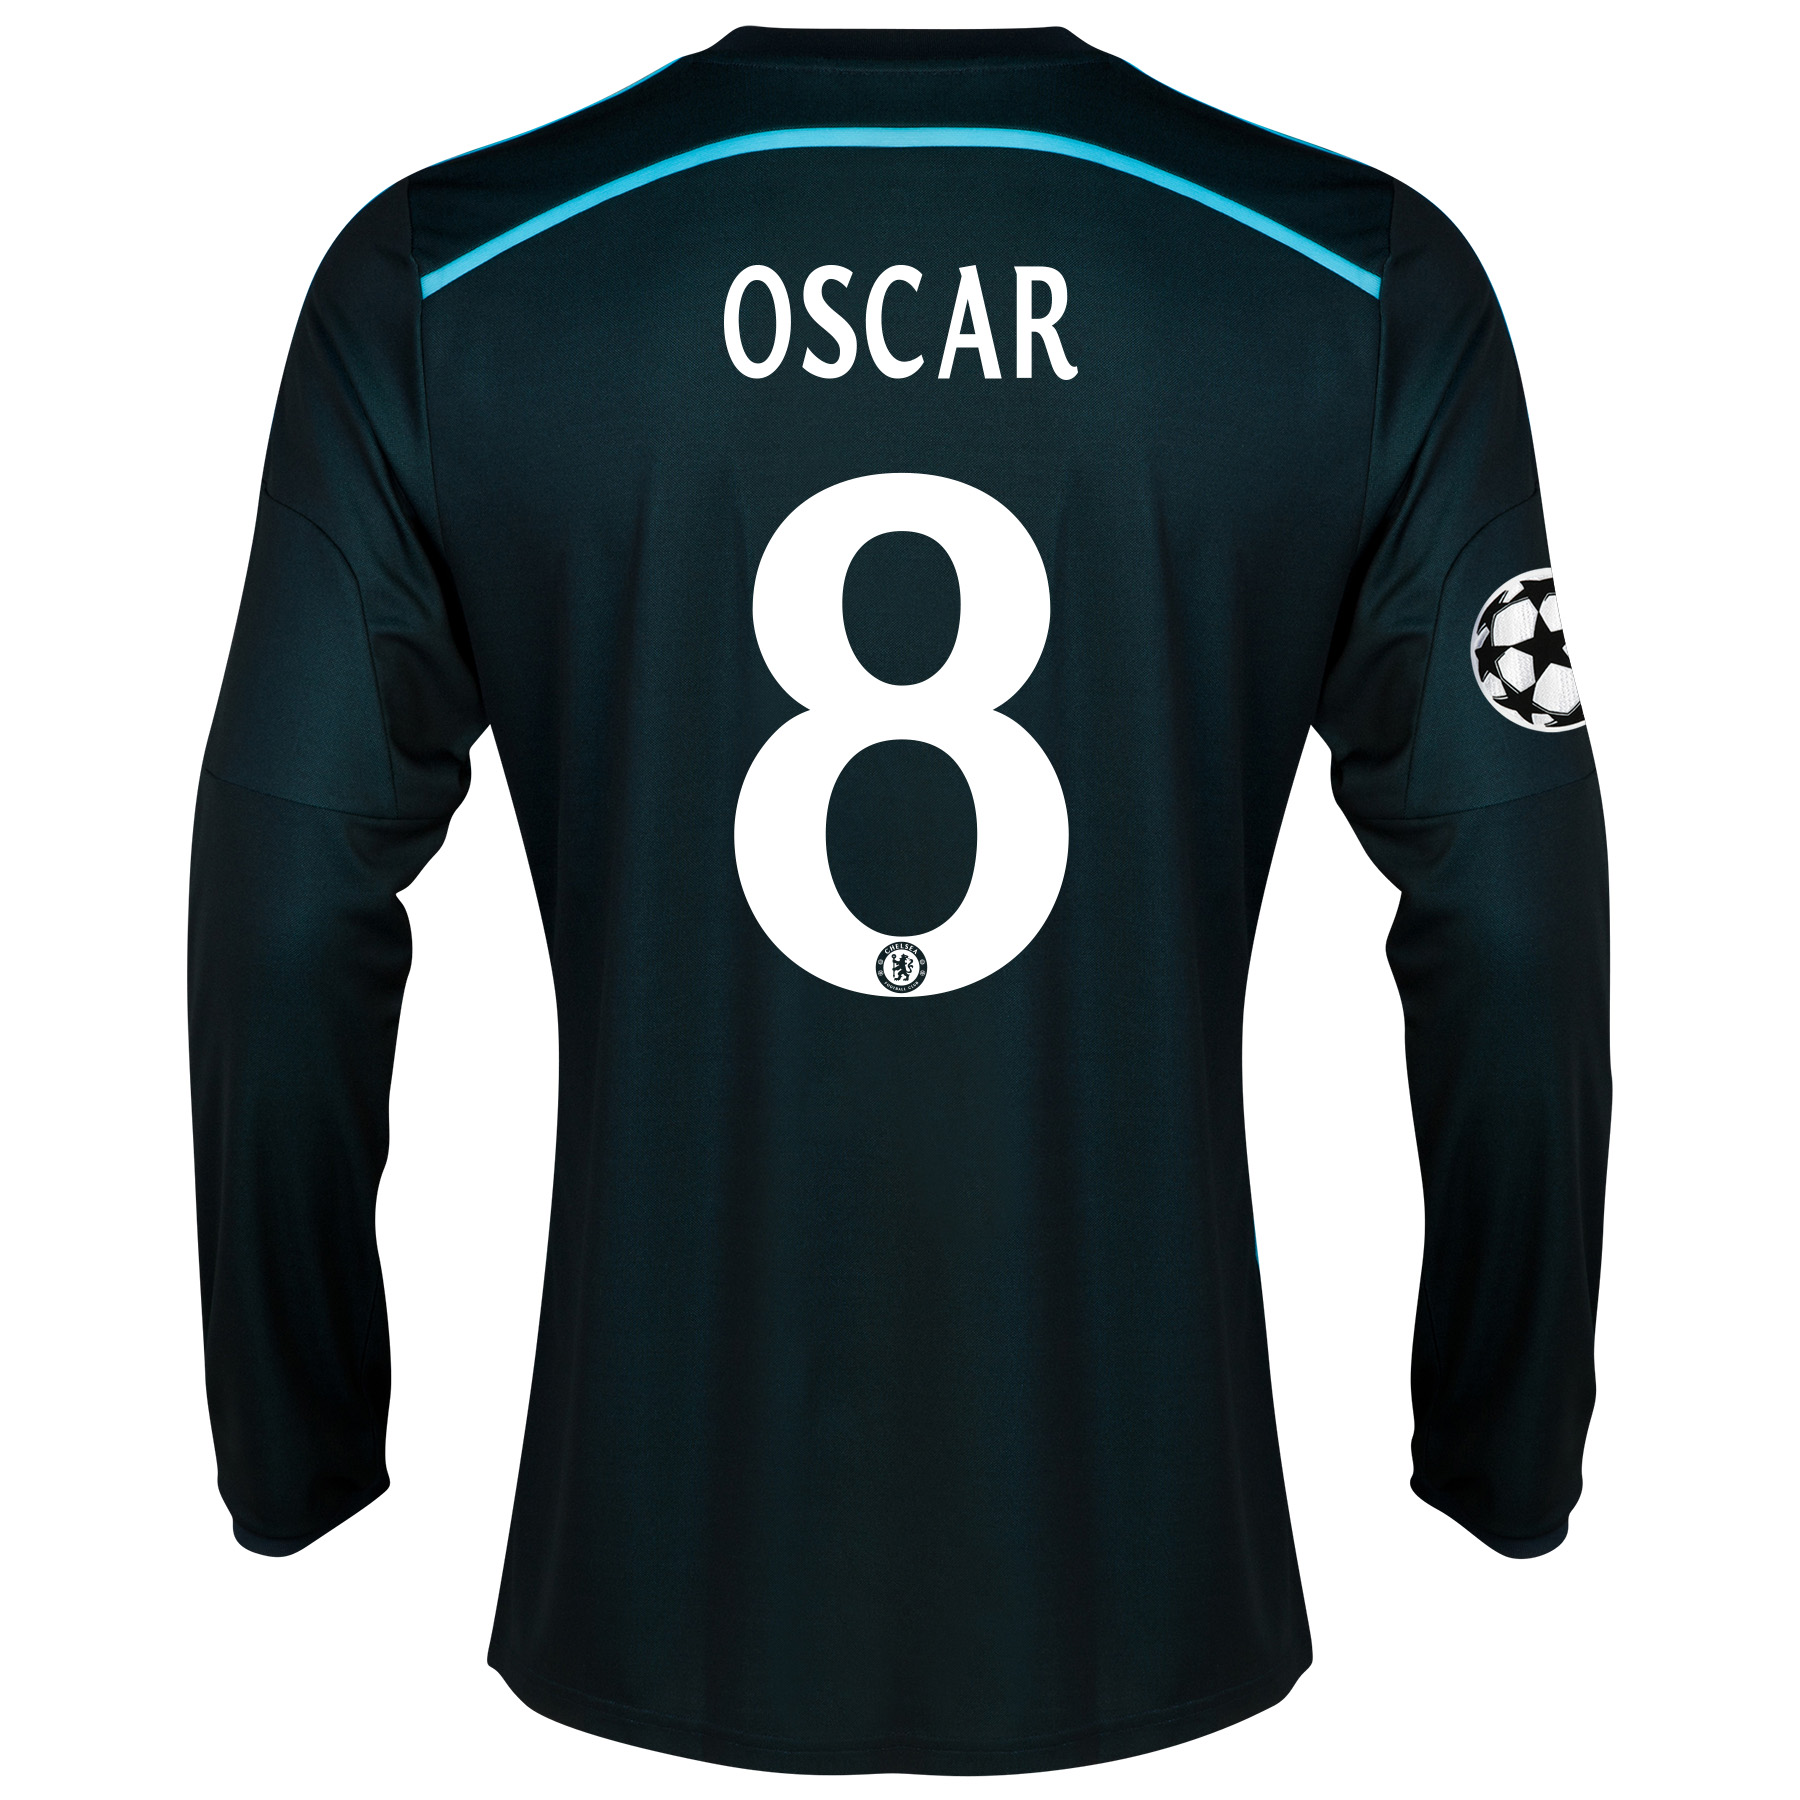 Chelsea UEFA Champions League Third Shirt 2014/15 - Long Sleeve - Kids with Oscar 11 printing